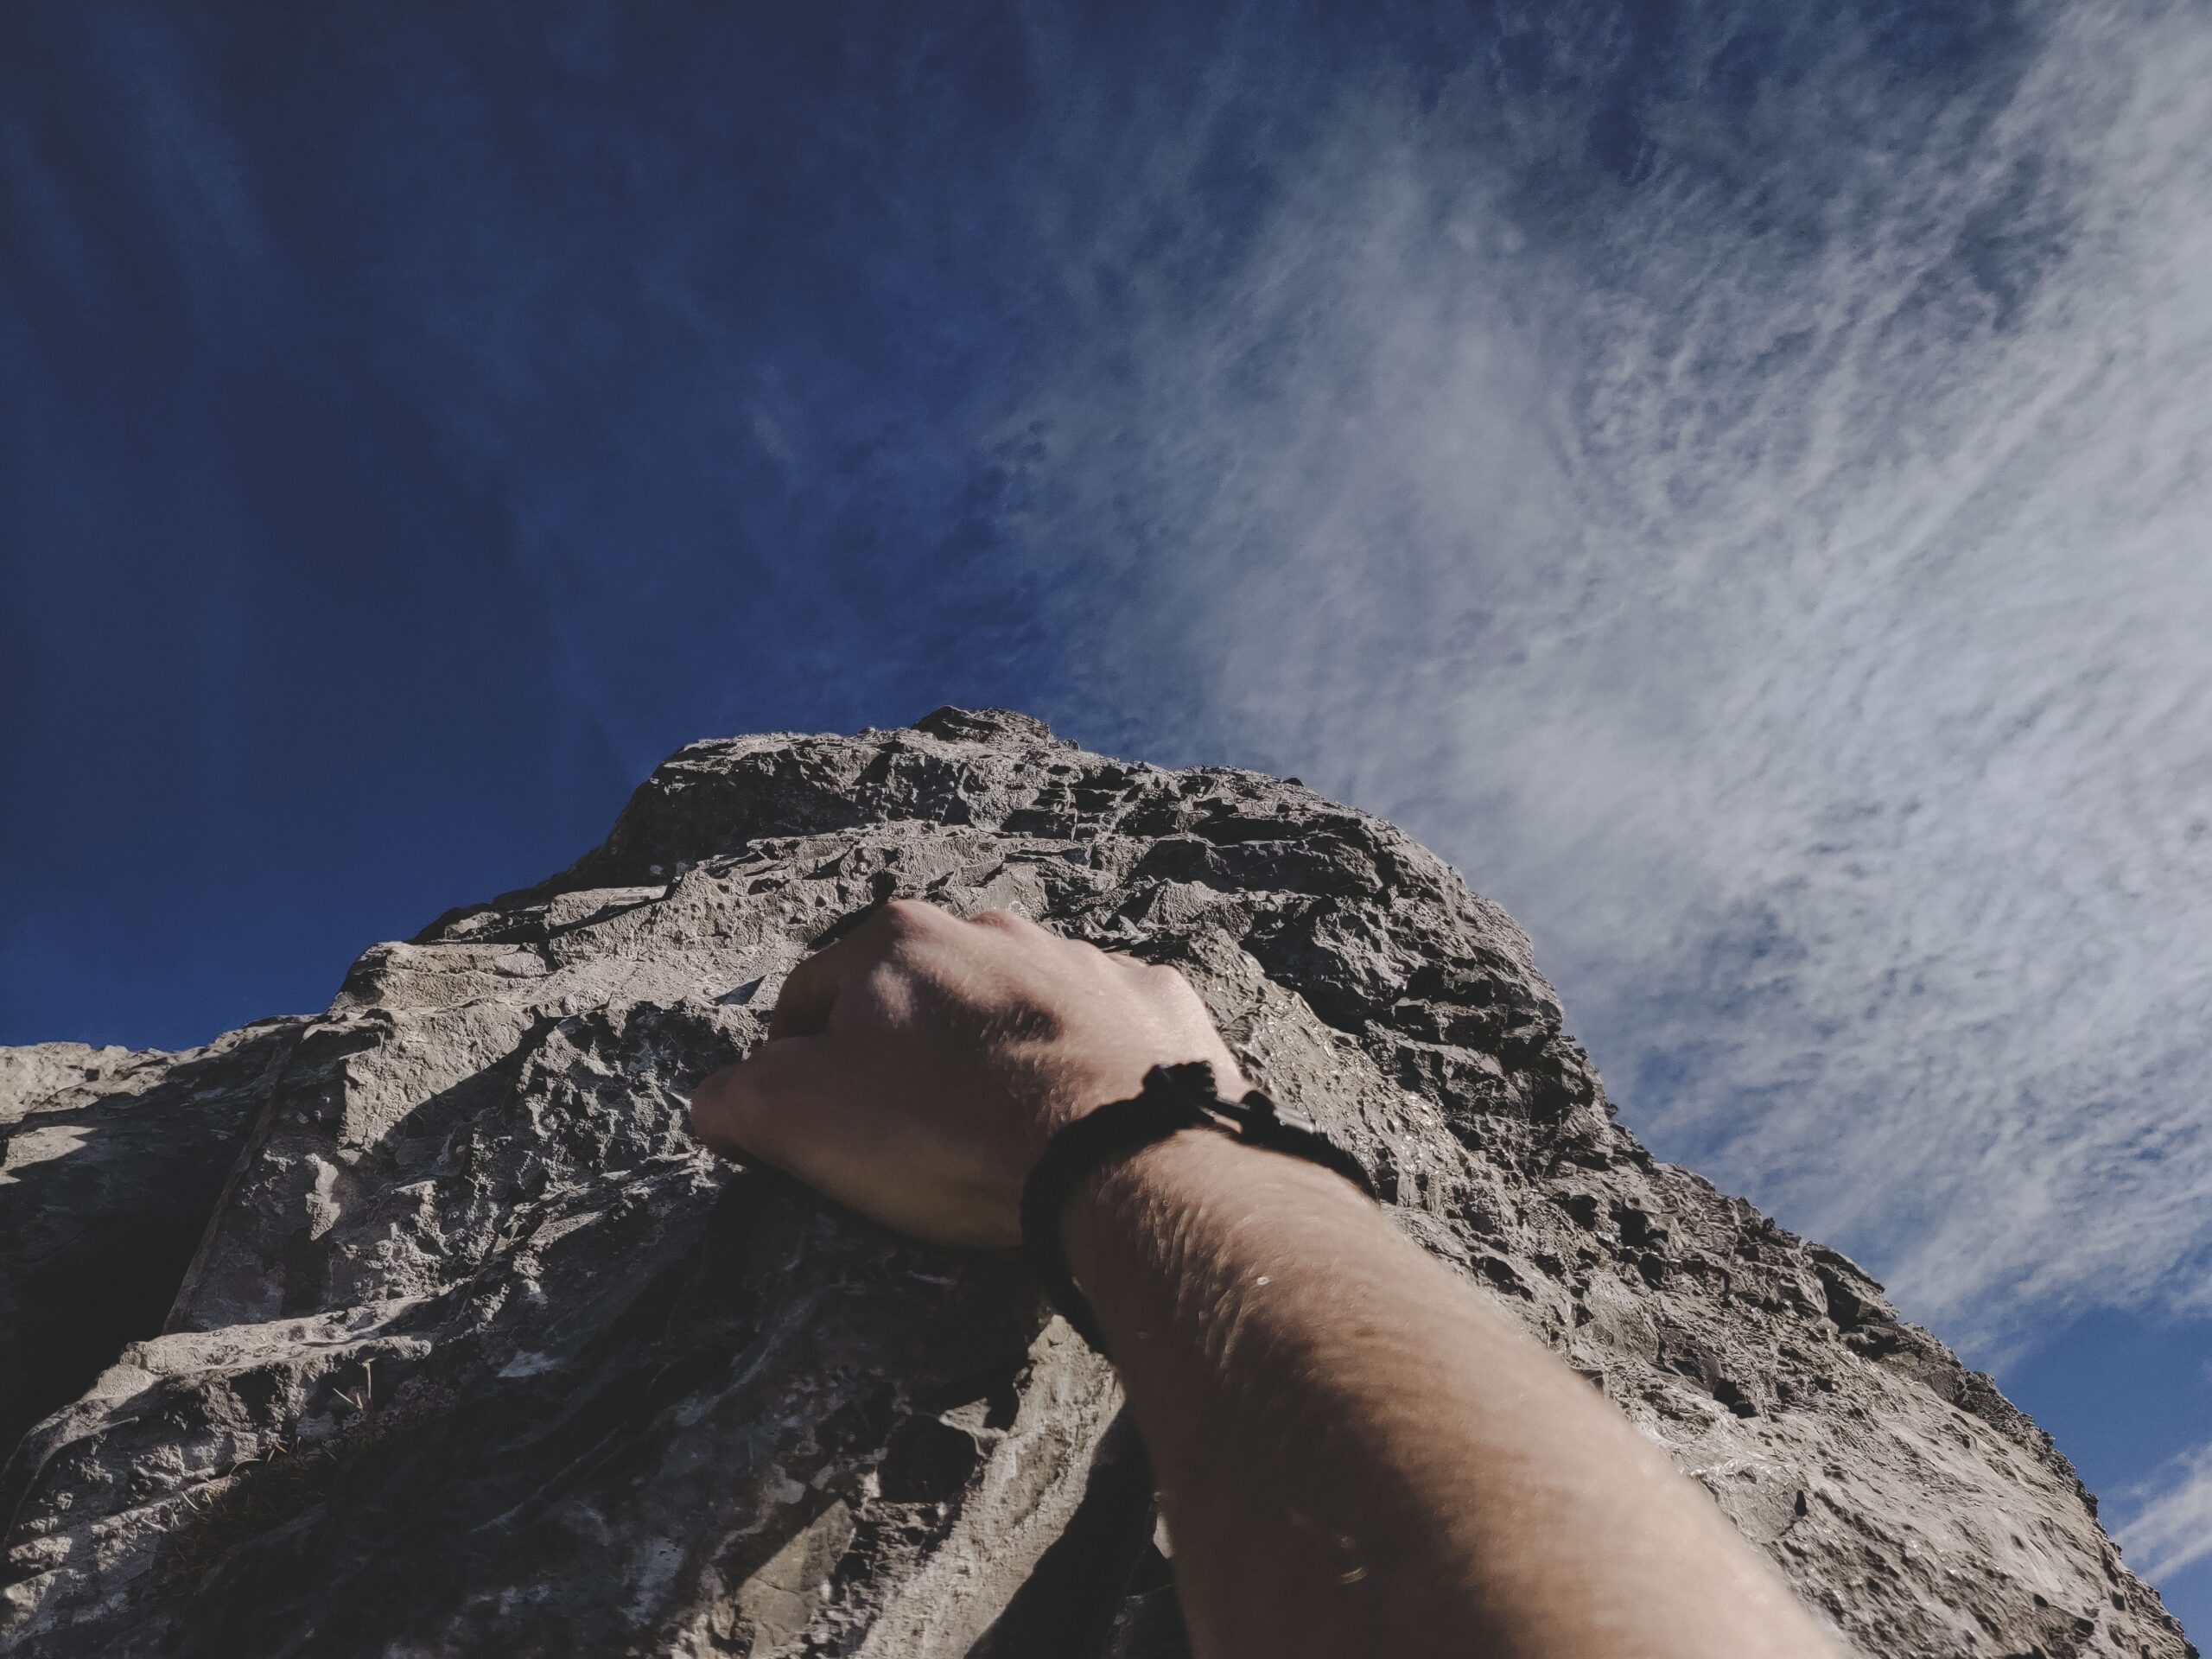 Free solo climbing: one of the most extreme sports